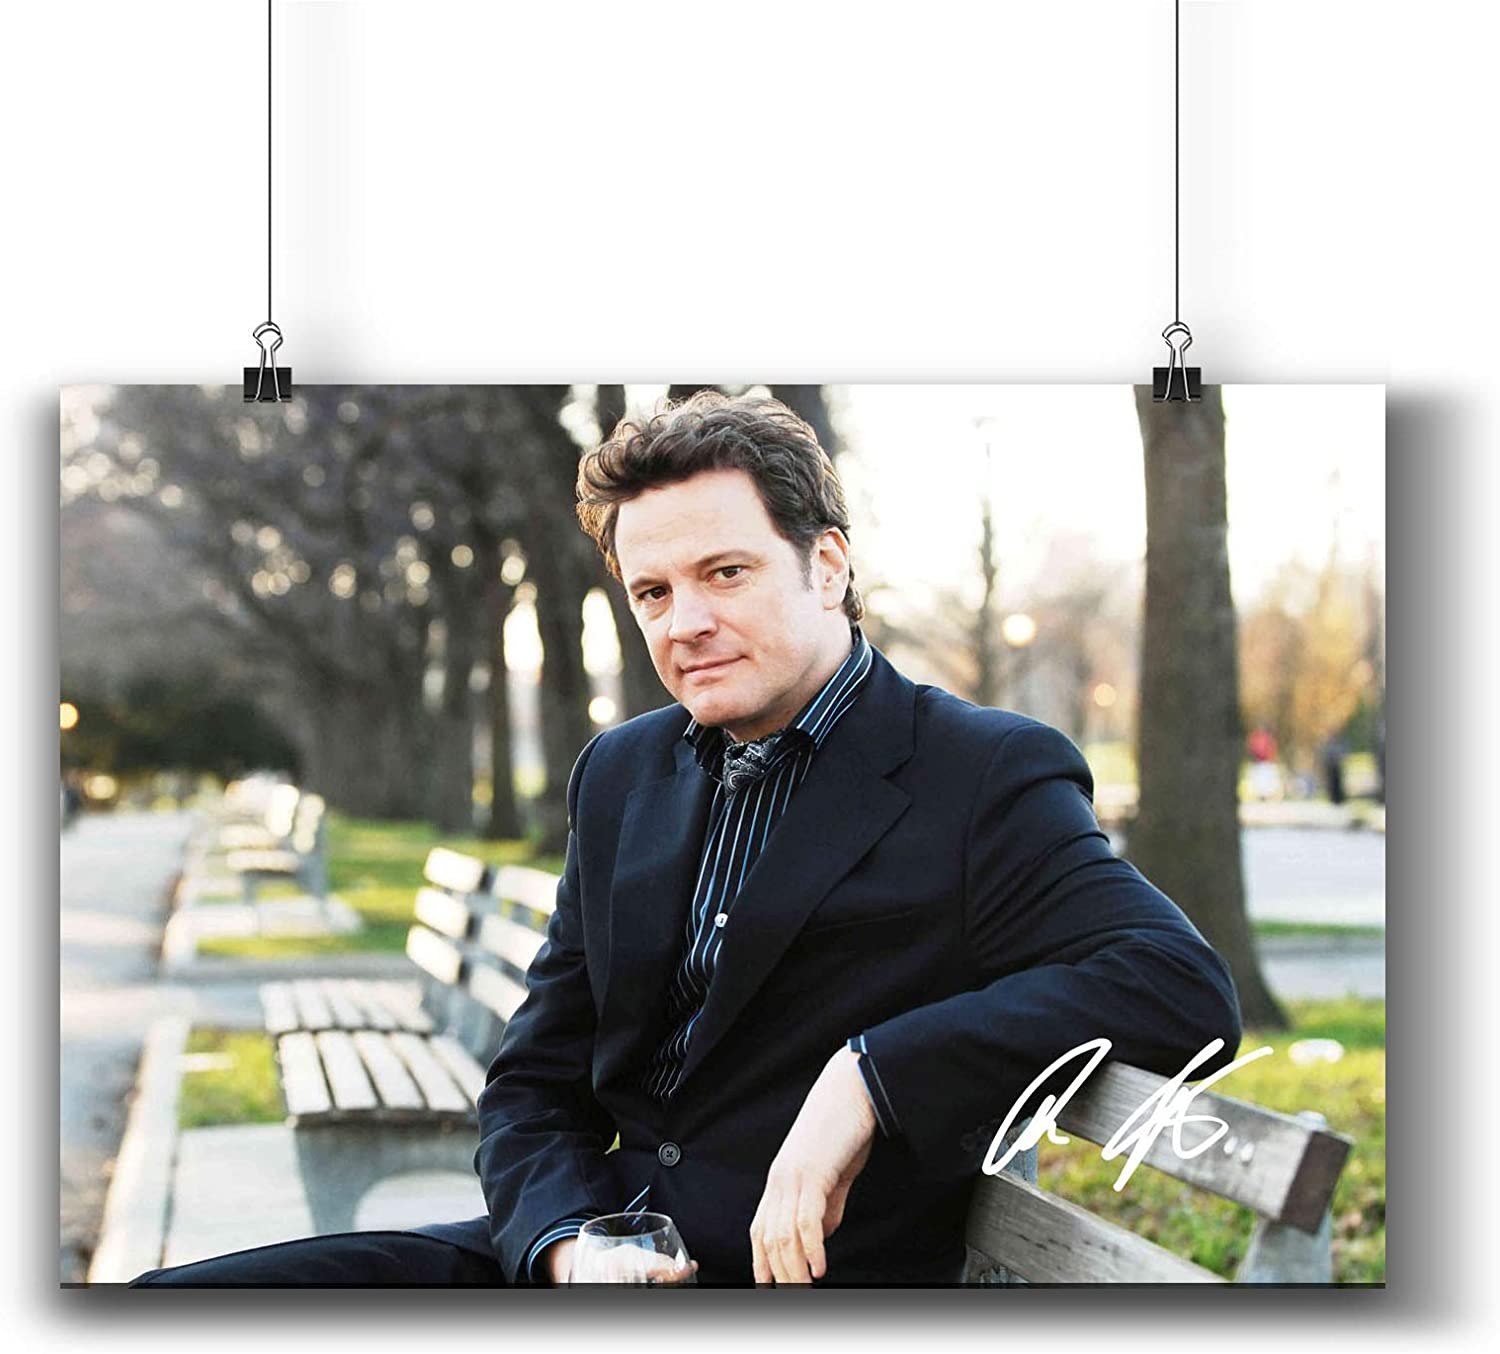 Colin Firth Actor Movie Photo Poster Prints 006-003 Reprint Signed,Wall Art Decor for Dorm Bedroom Living Room (A4|8x12inch|21x29cm)